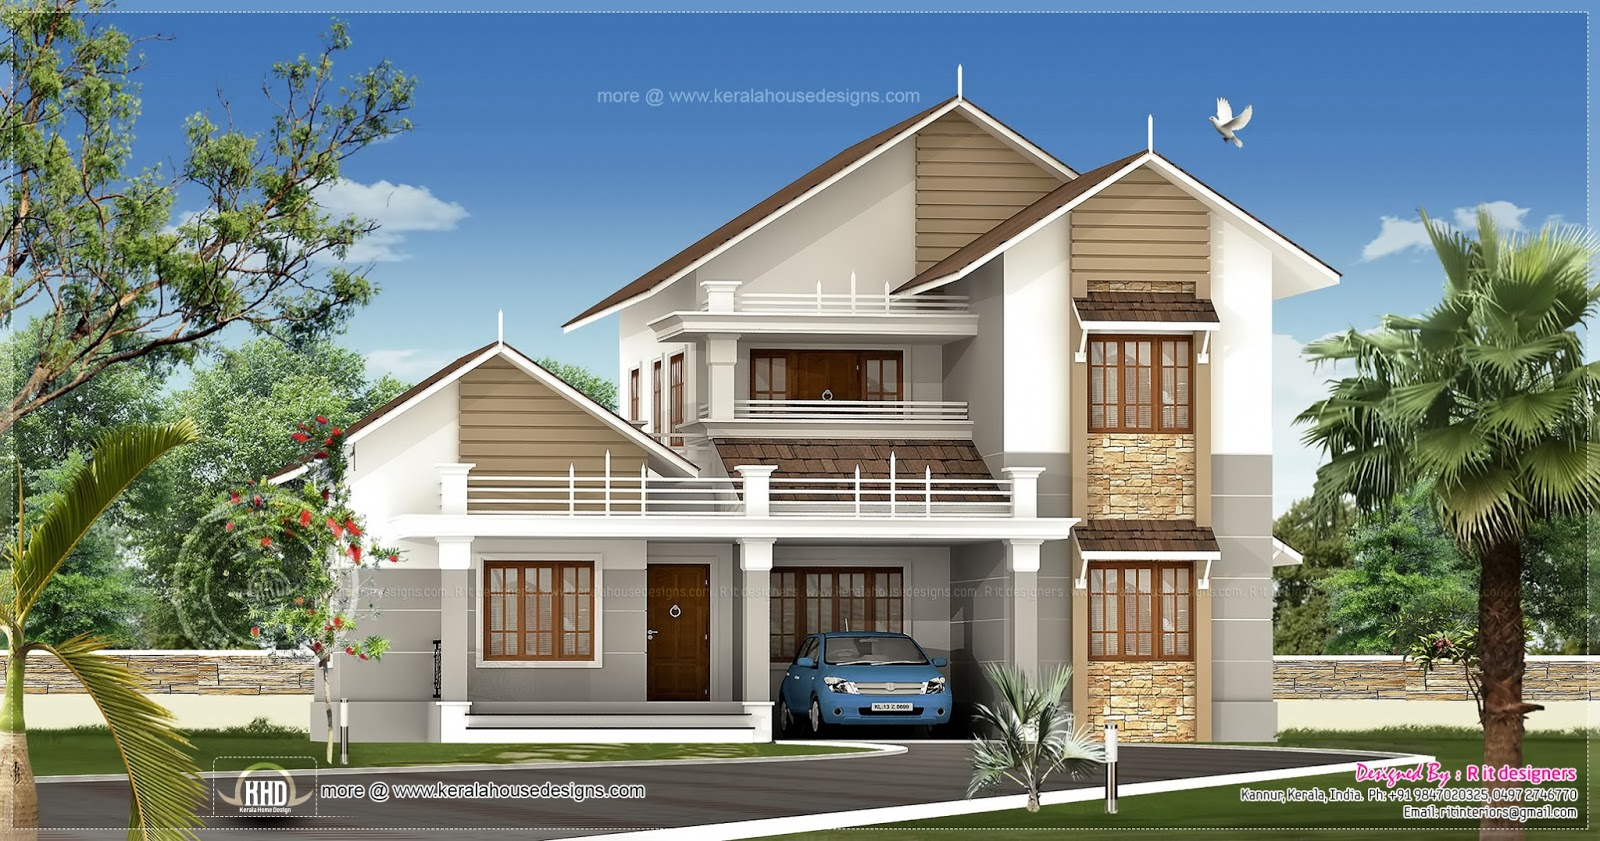 2539 Sq Ft Sloping Roof Villa Exterior Kerala Home Design And Floor Plans